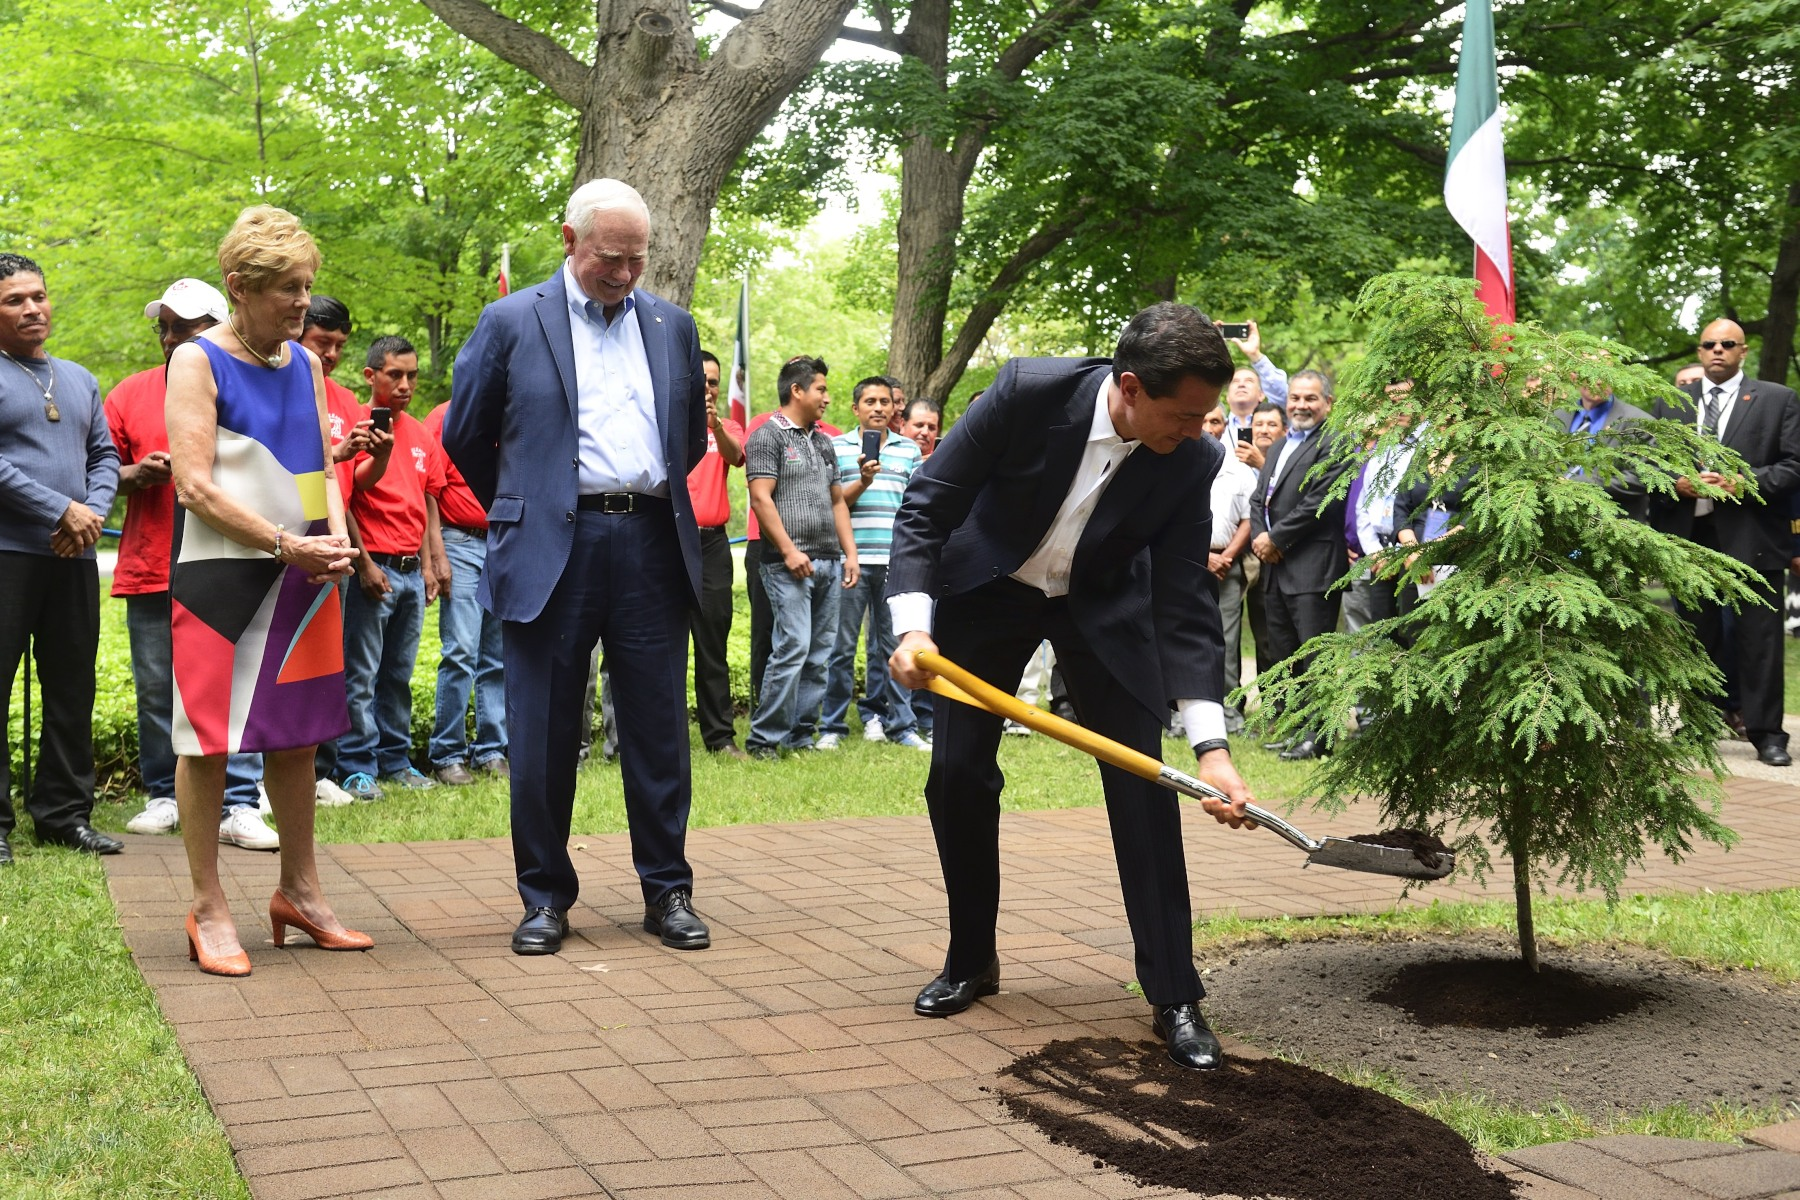 As per tradition, the president planted a tree, an hemlock, on the grounds of Rideau Hall to commemorate his visit to Canada.